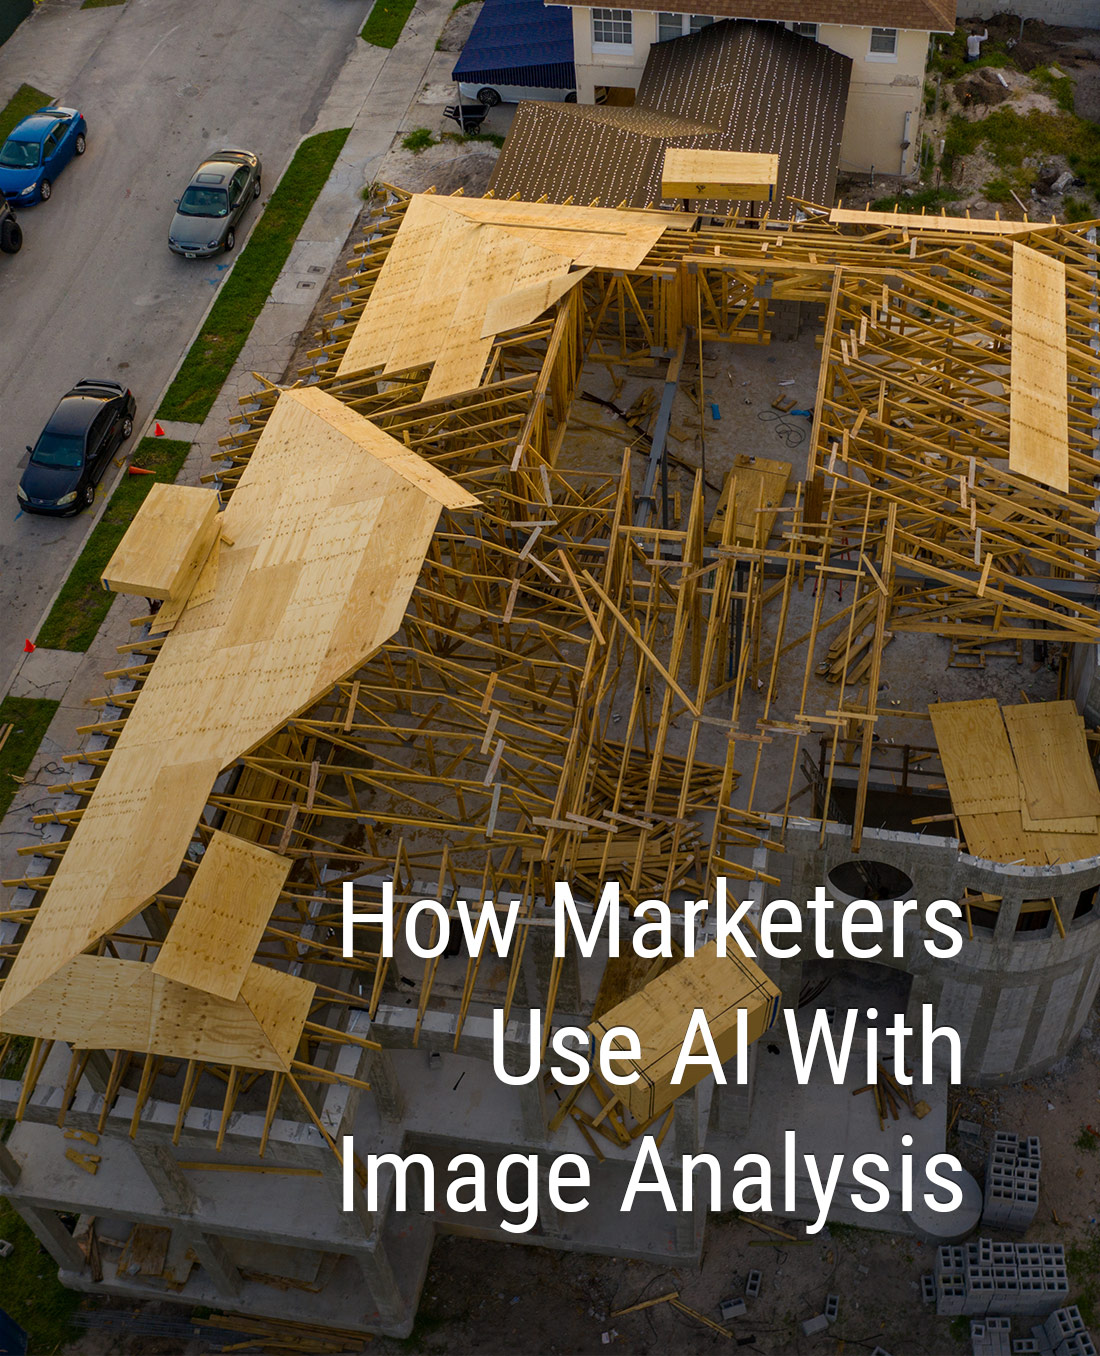 How Marketers Use AI With Image Analysis